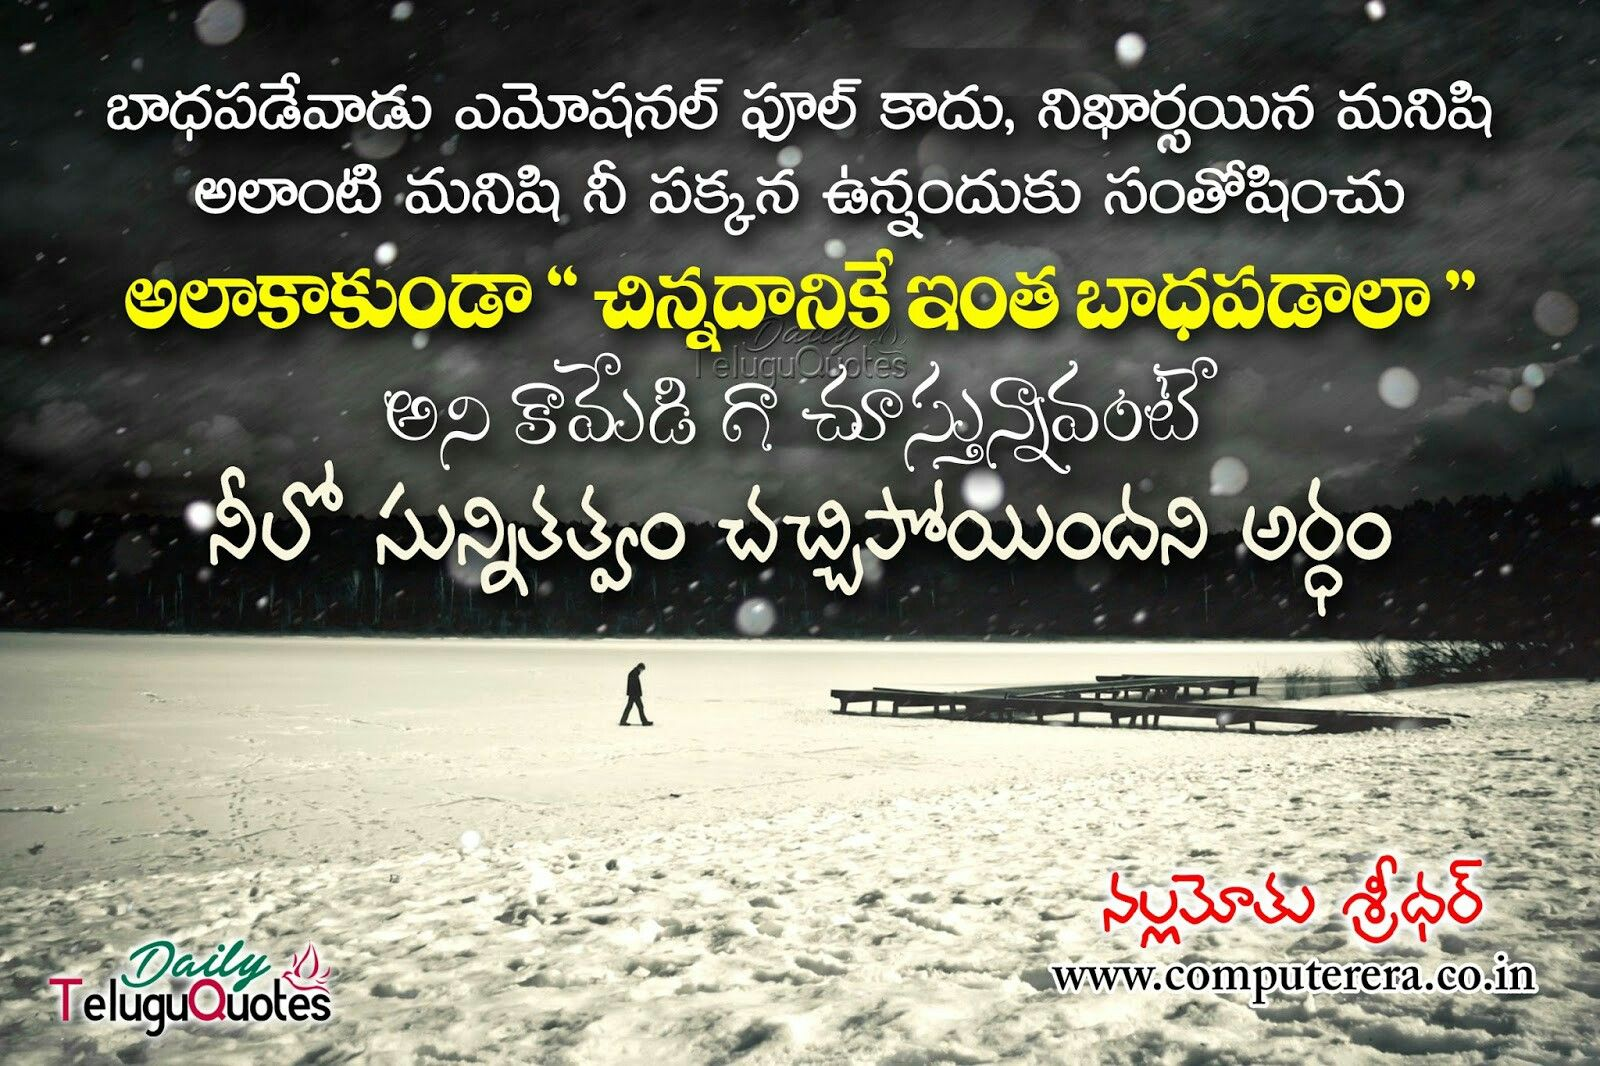 Pin by Sunitha yanamadala on Quotes (With images